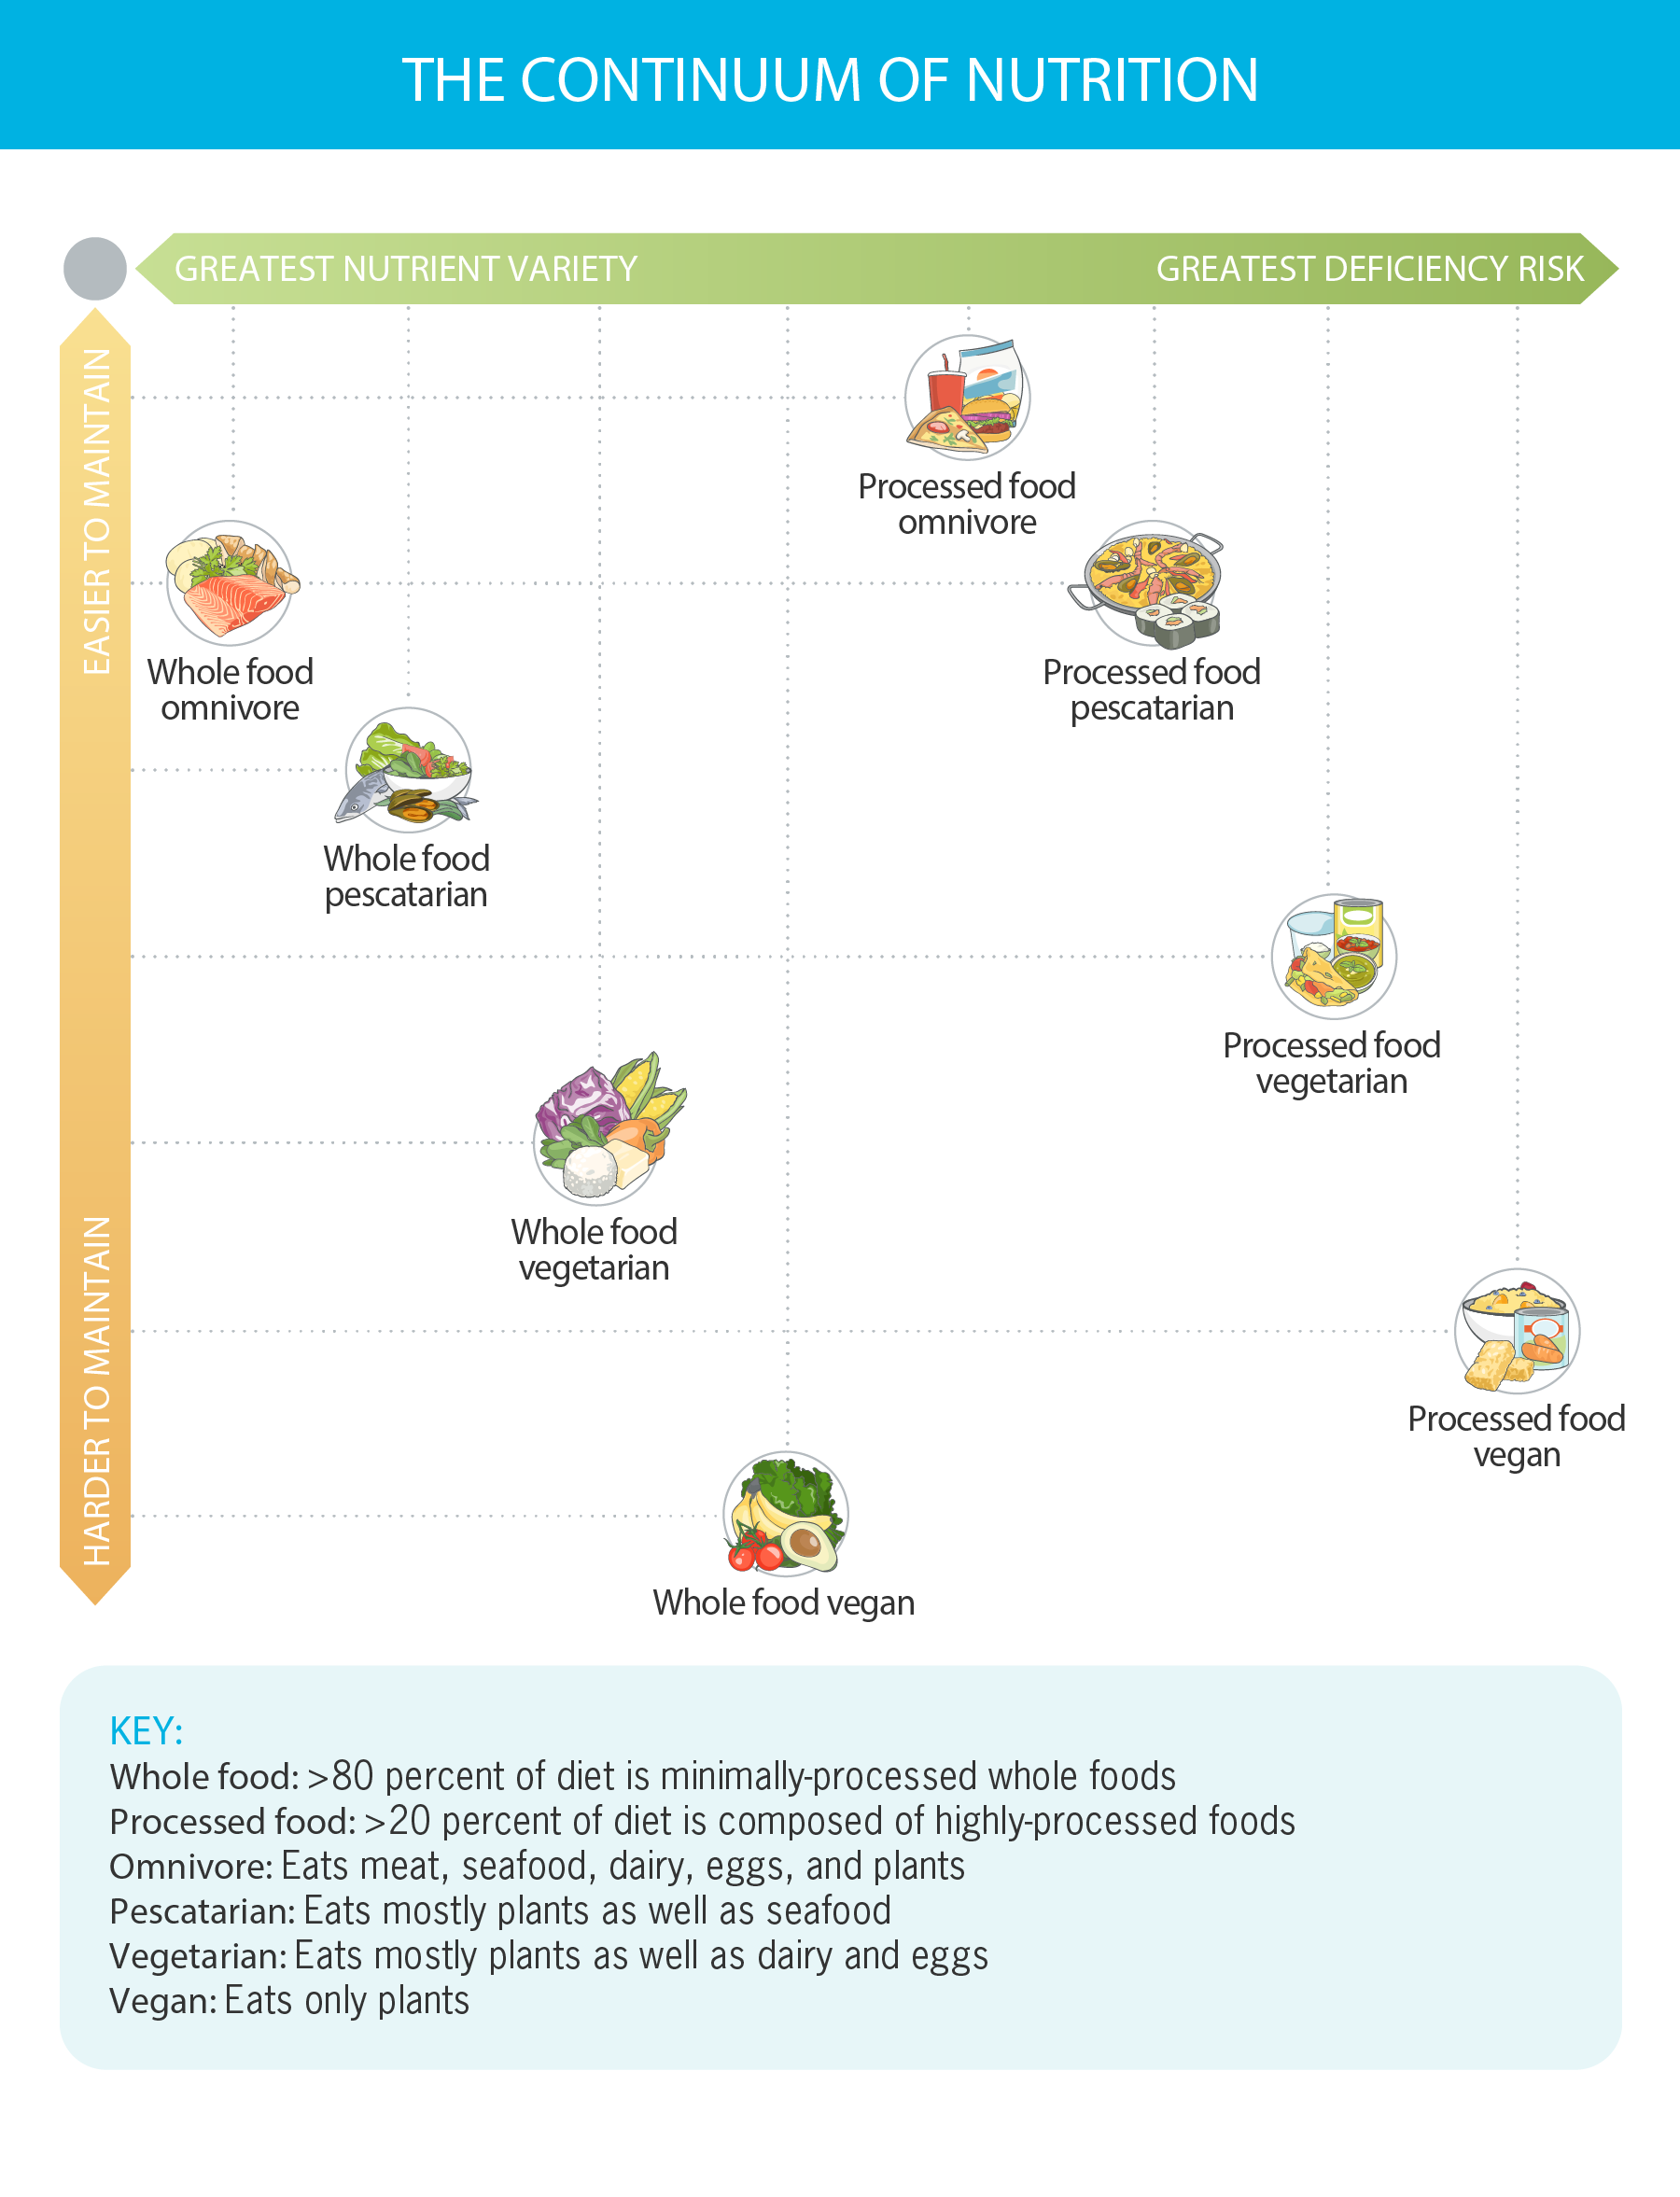 "This chart is titled ""The Continuum of Nutrition."" At the top of the chart is a horizontal green bar: On the left end it reads, ""Greatest Nutrient Variety""; on the right end, it reads, ""Greatest Deficiency Risk."" On the left side of the chart, there's a vertical orange bar. On the bottom end it reads, ""Harder to Maintain""; on the top end, it reads, ""Easier to Maintain."" Types of eating styles are plotted based on where they fall on both continuums. ""Whole food omnivore"" ranks well on ""easier to maintain"" and ""greatest nutrient variety."" ""Whole food pescatarian"" is a little harder than that in both categories, but still scores well overall. ""Whole food vegetarian"" and ""whole food vegan"" both move farther away on both continuums, with ""whole food vegan"" being the hardest to maintain and having the least nutrient variety of the aforementioned approaches. However, all of these approaches provide great nutrient variety than the processed food version of each approach. Those fall in the same order, but are each at progressively greater risk of nutrient deficiency."